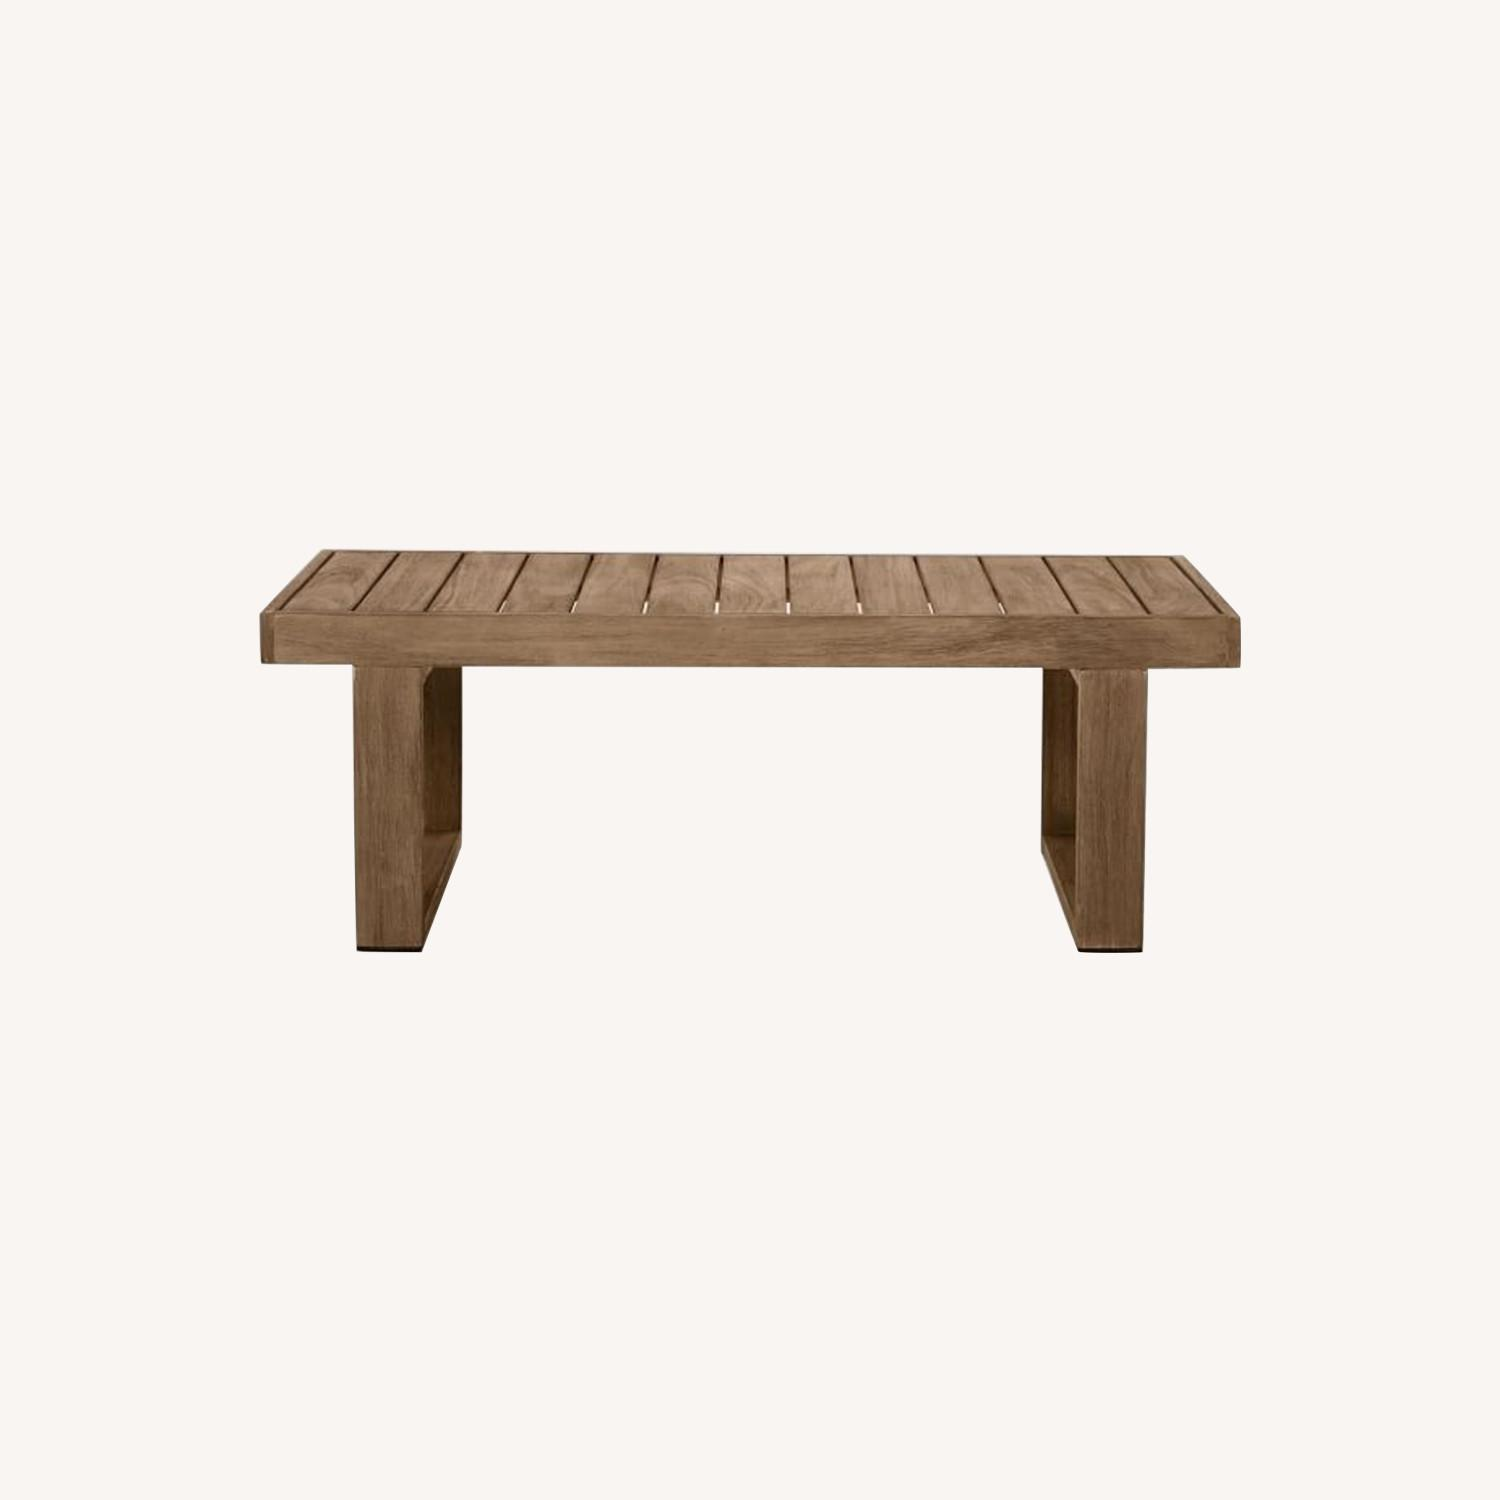 West Elm Portside Outdoor Coffee Table , Driftwood - image-0